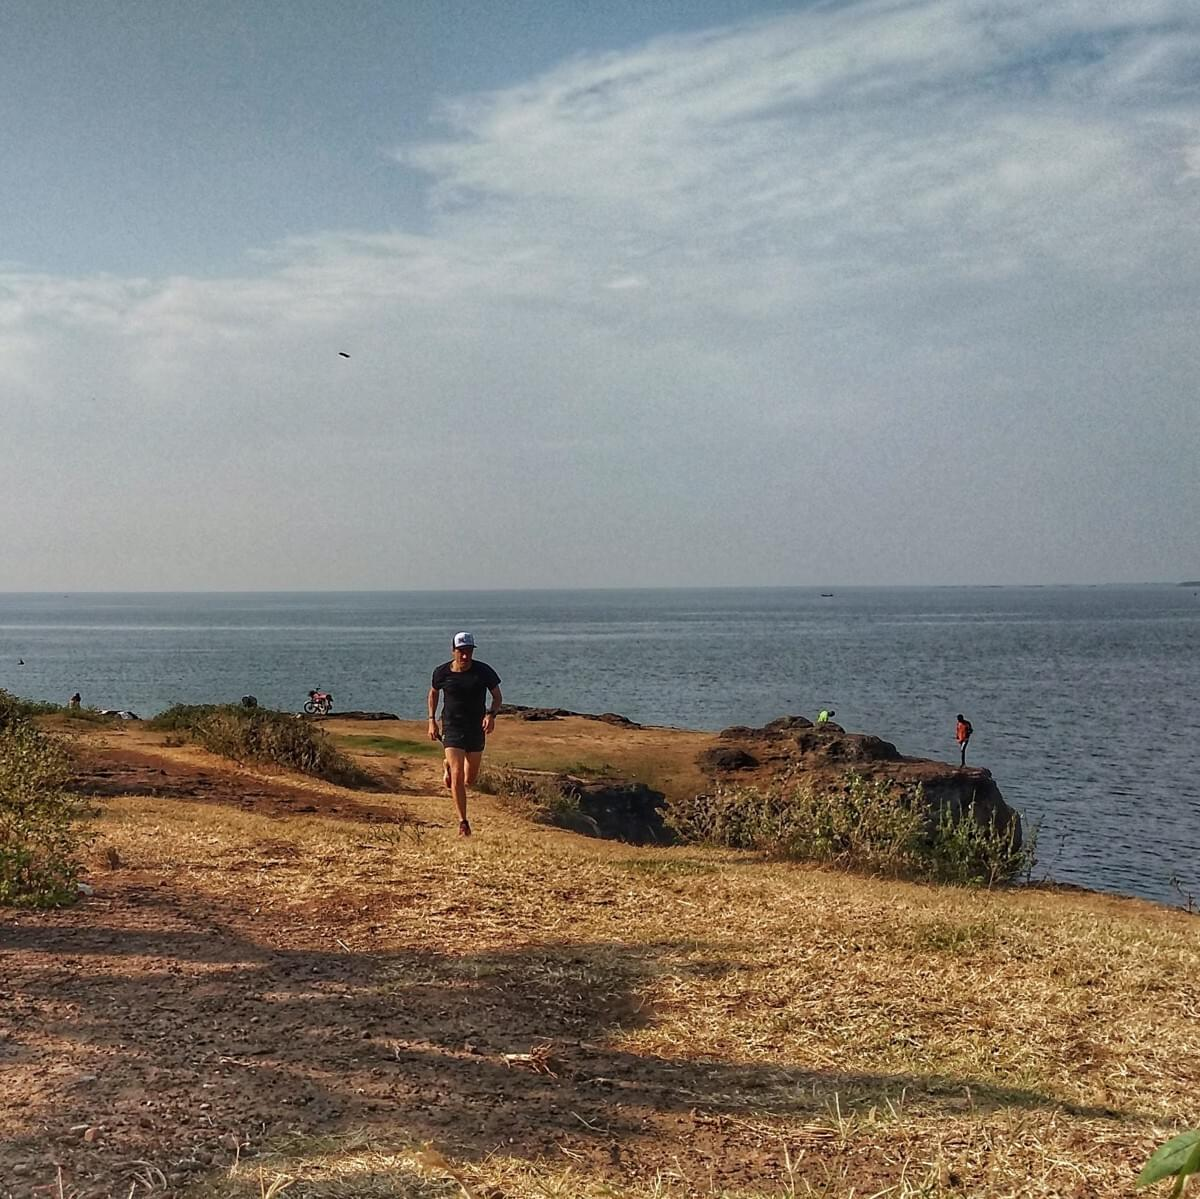 A solo runner climbs a hill on patchy grass above the sprawling Lake Victoria, Entebbe, Uganda